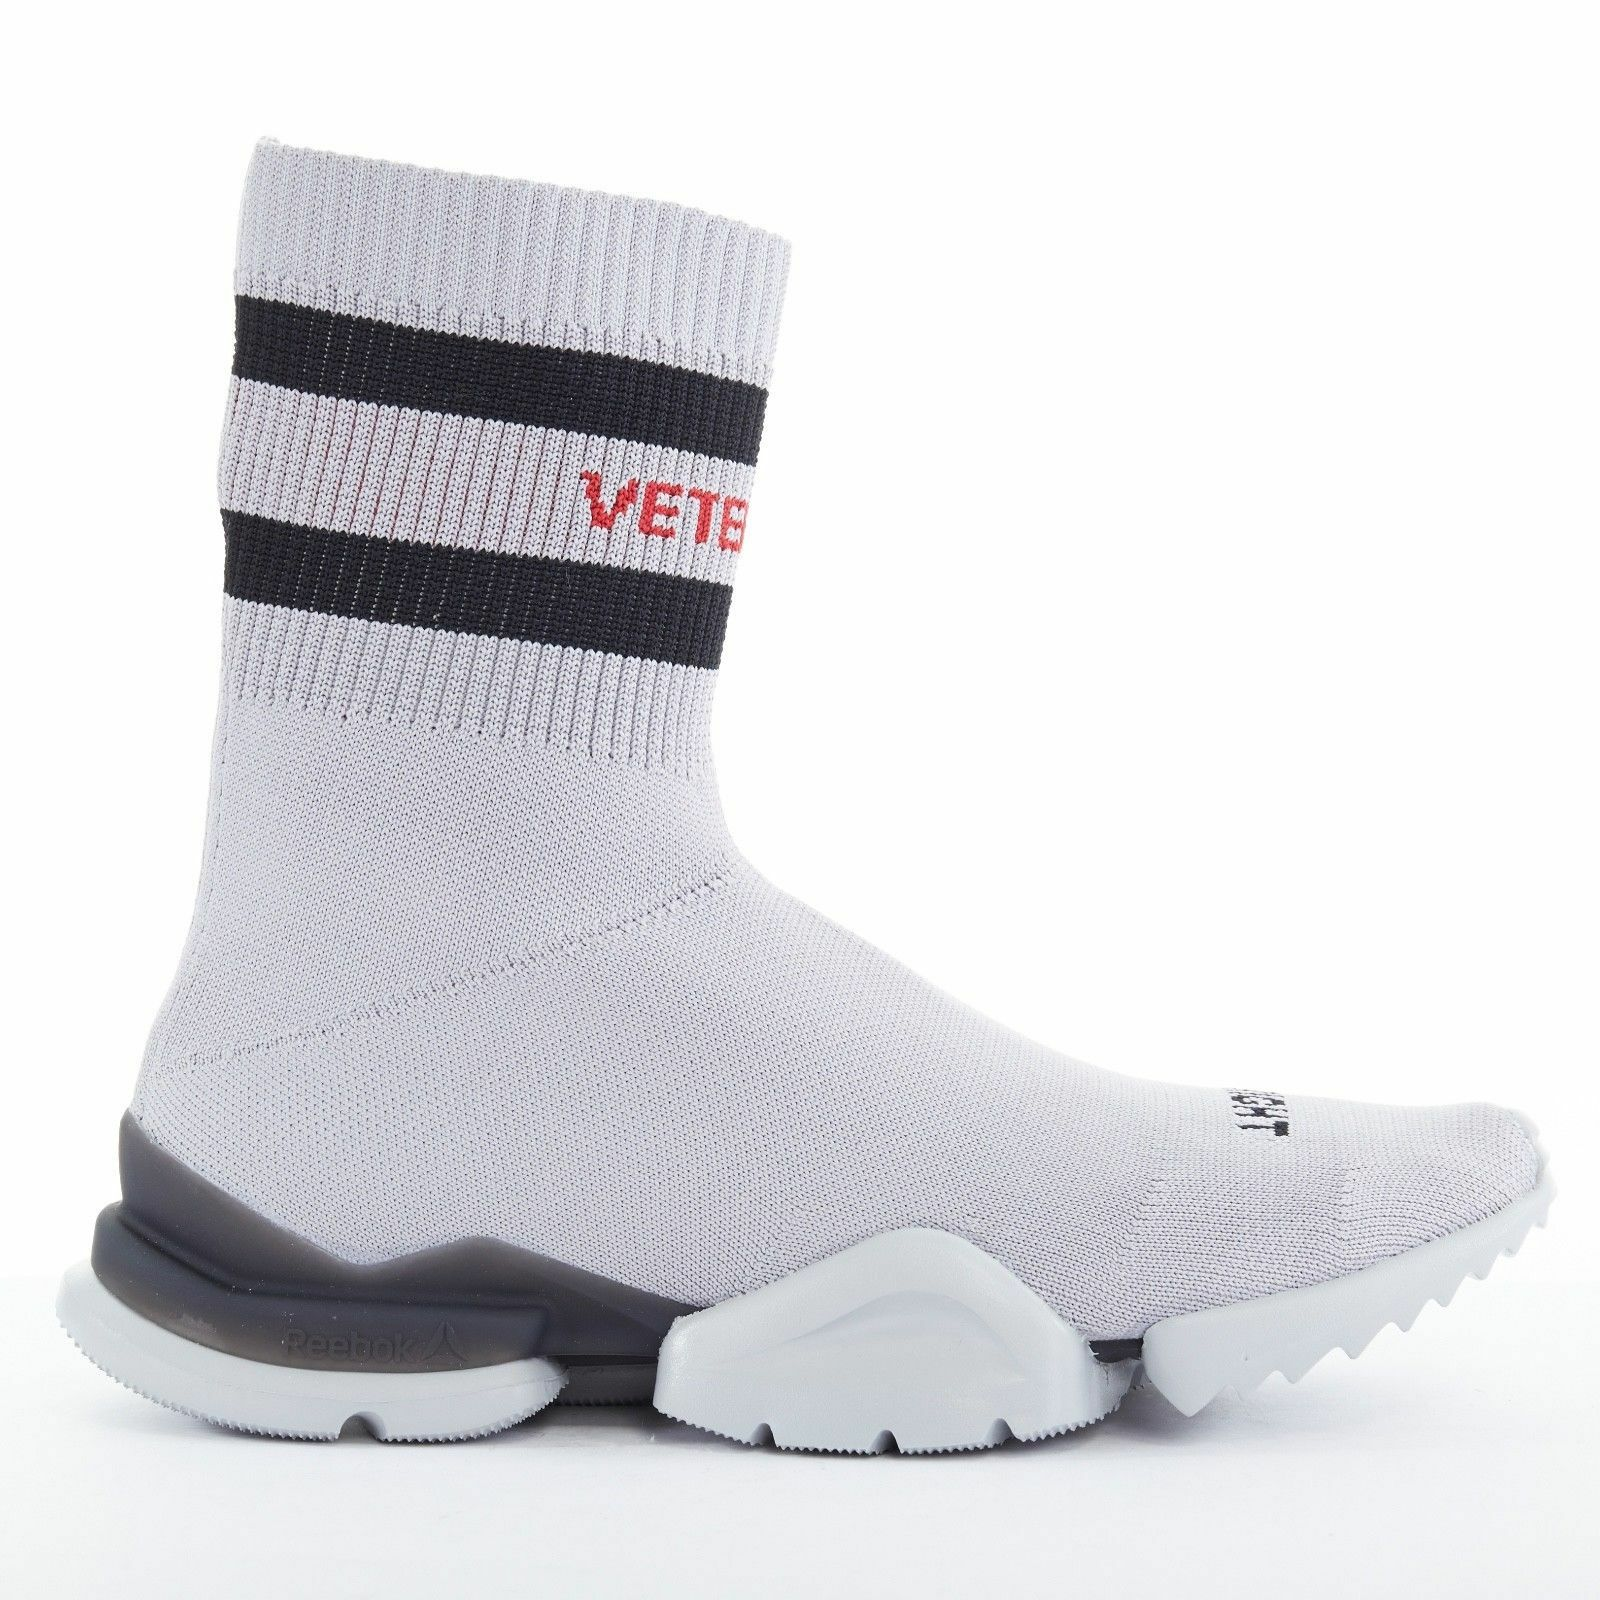 New New New VETEMENTS REEBOK Sock Runner grigio sock knit speed trainer scarpe da ginnastica scarpe EU42 cf98d9